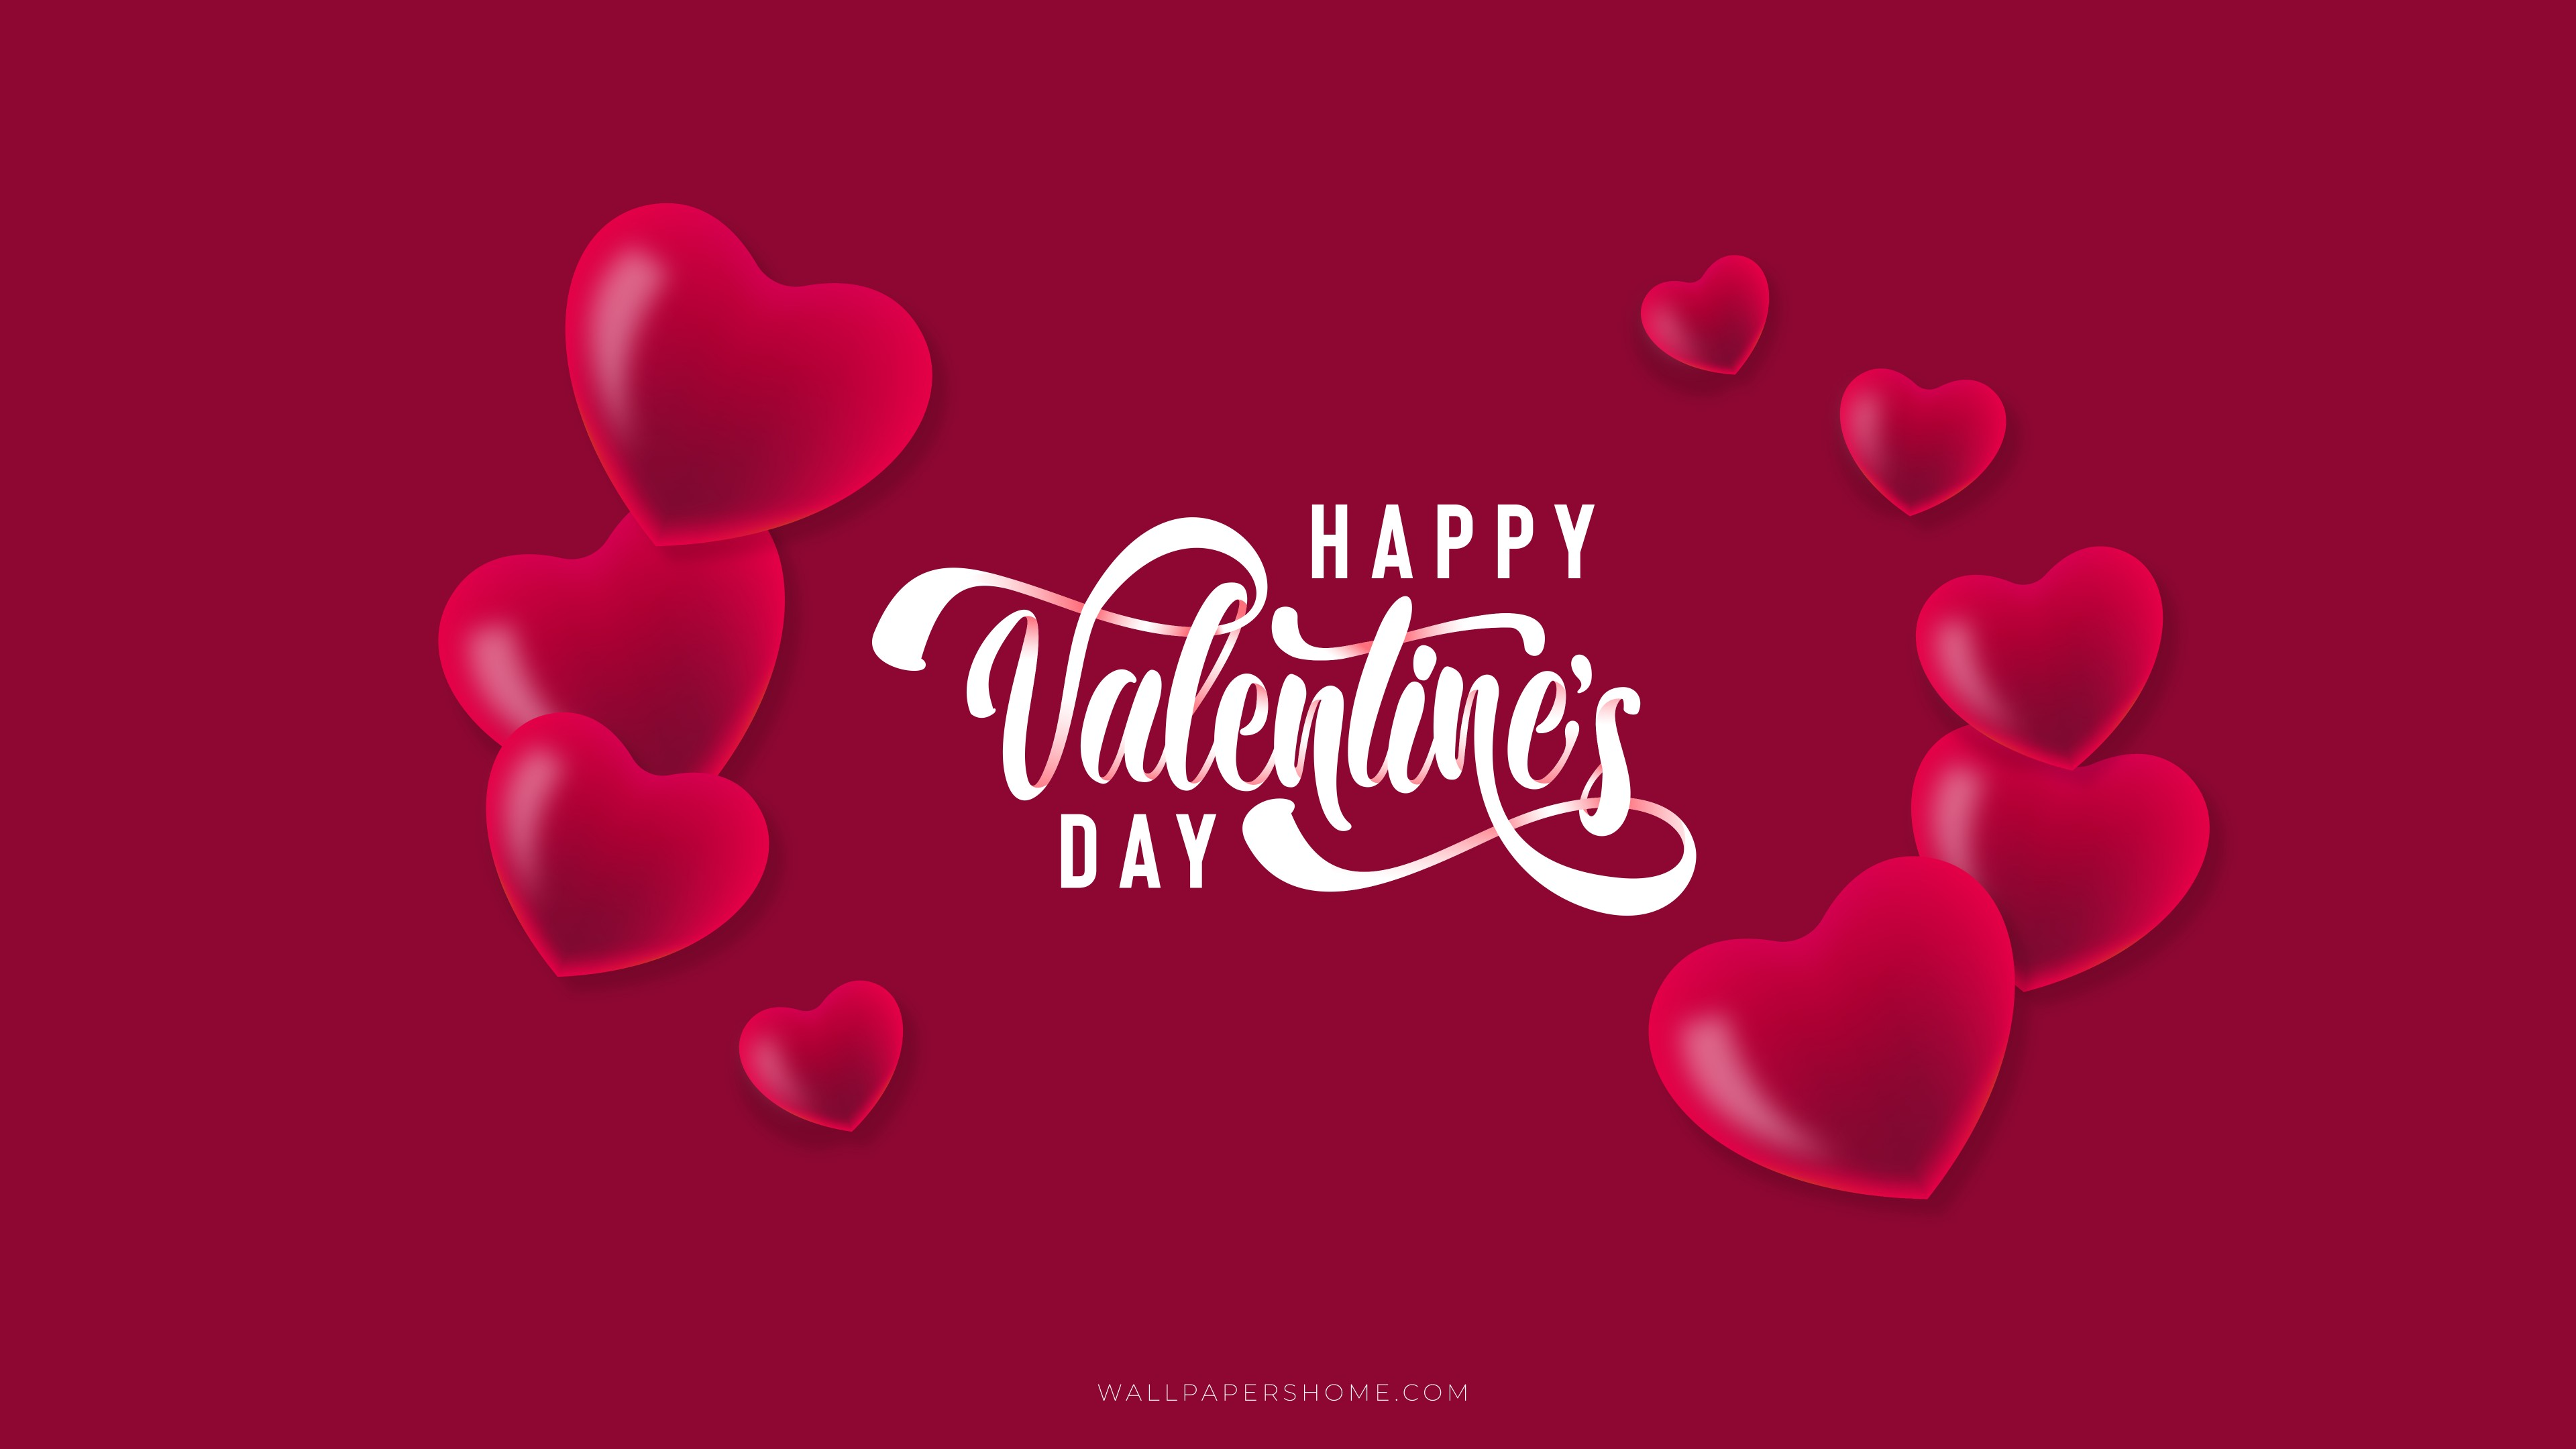 Coffee Quotes Wallpaper Wallpaper Valentine S Day 2019 Love Image Heart 8k